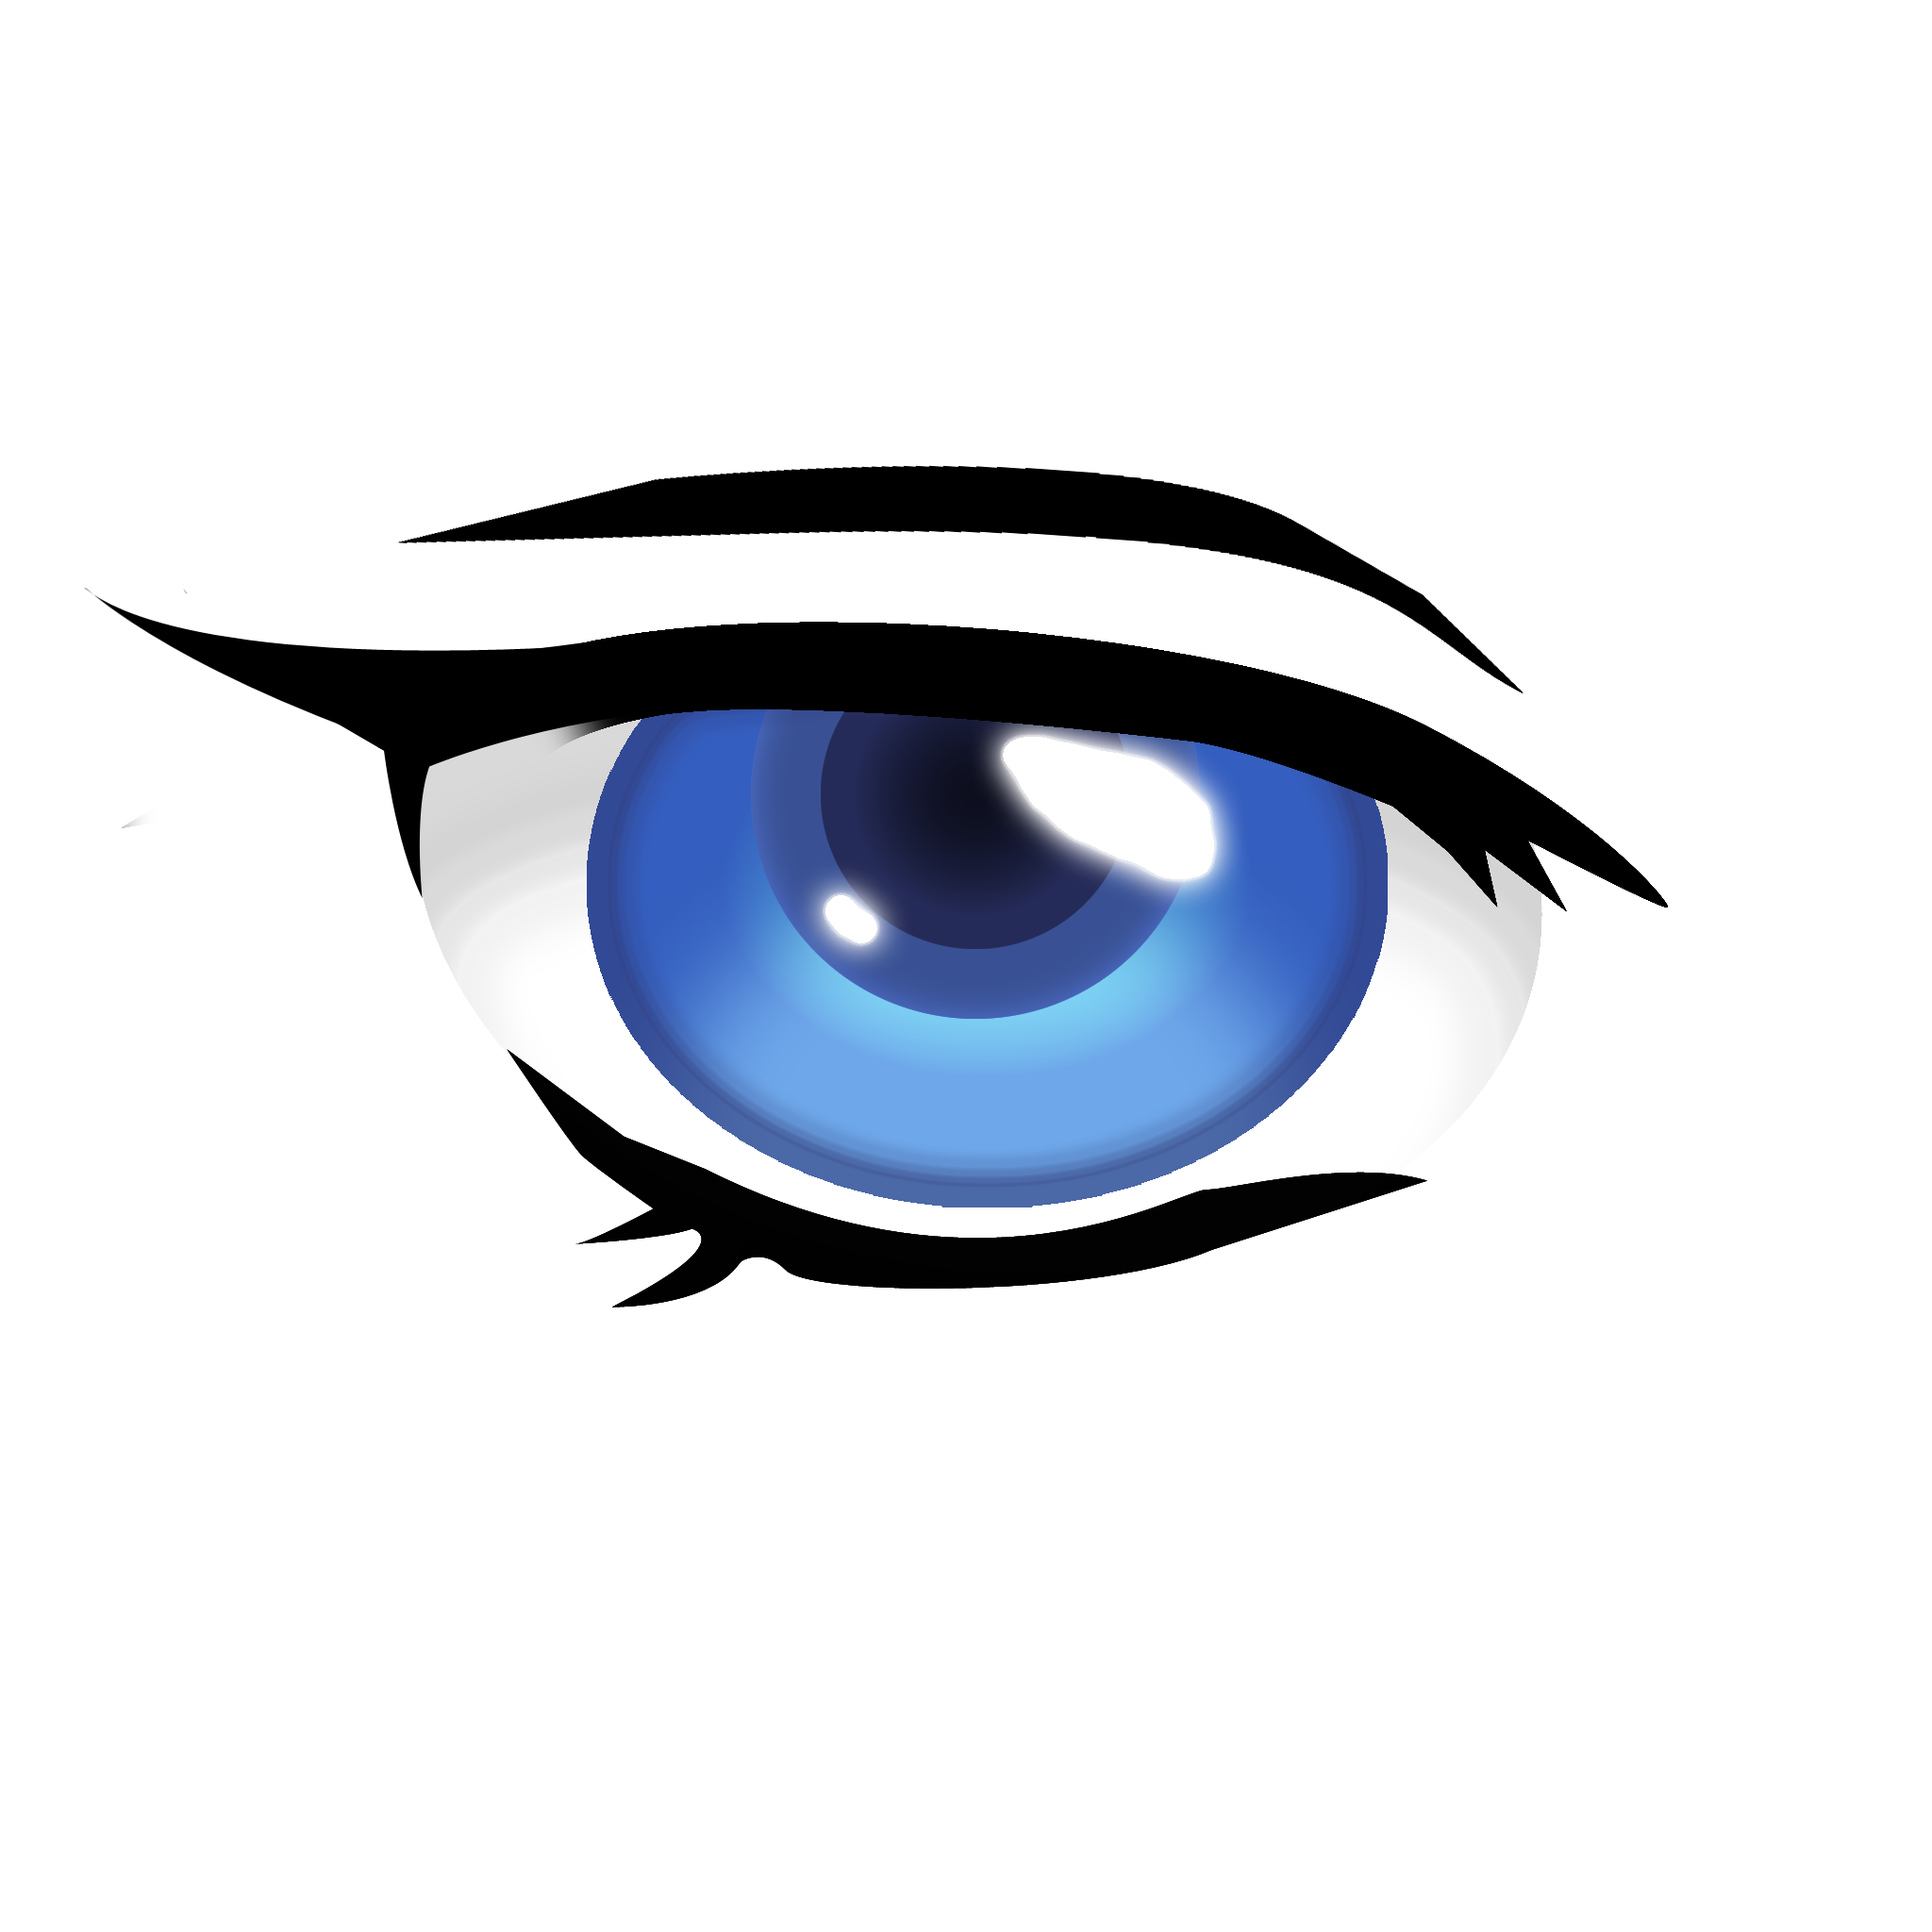 Anime eyes png. D help needed